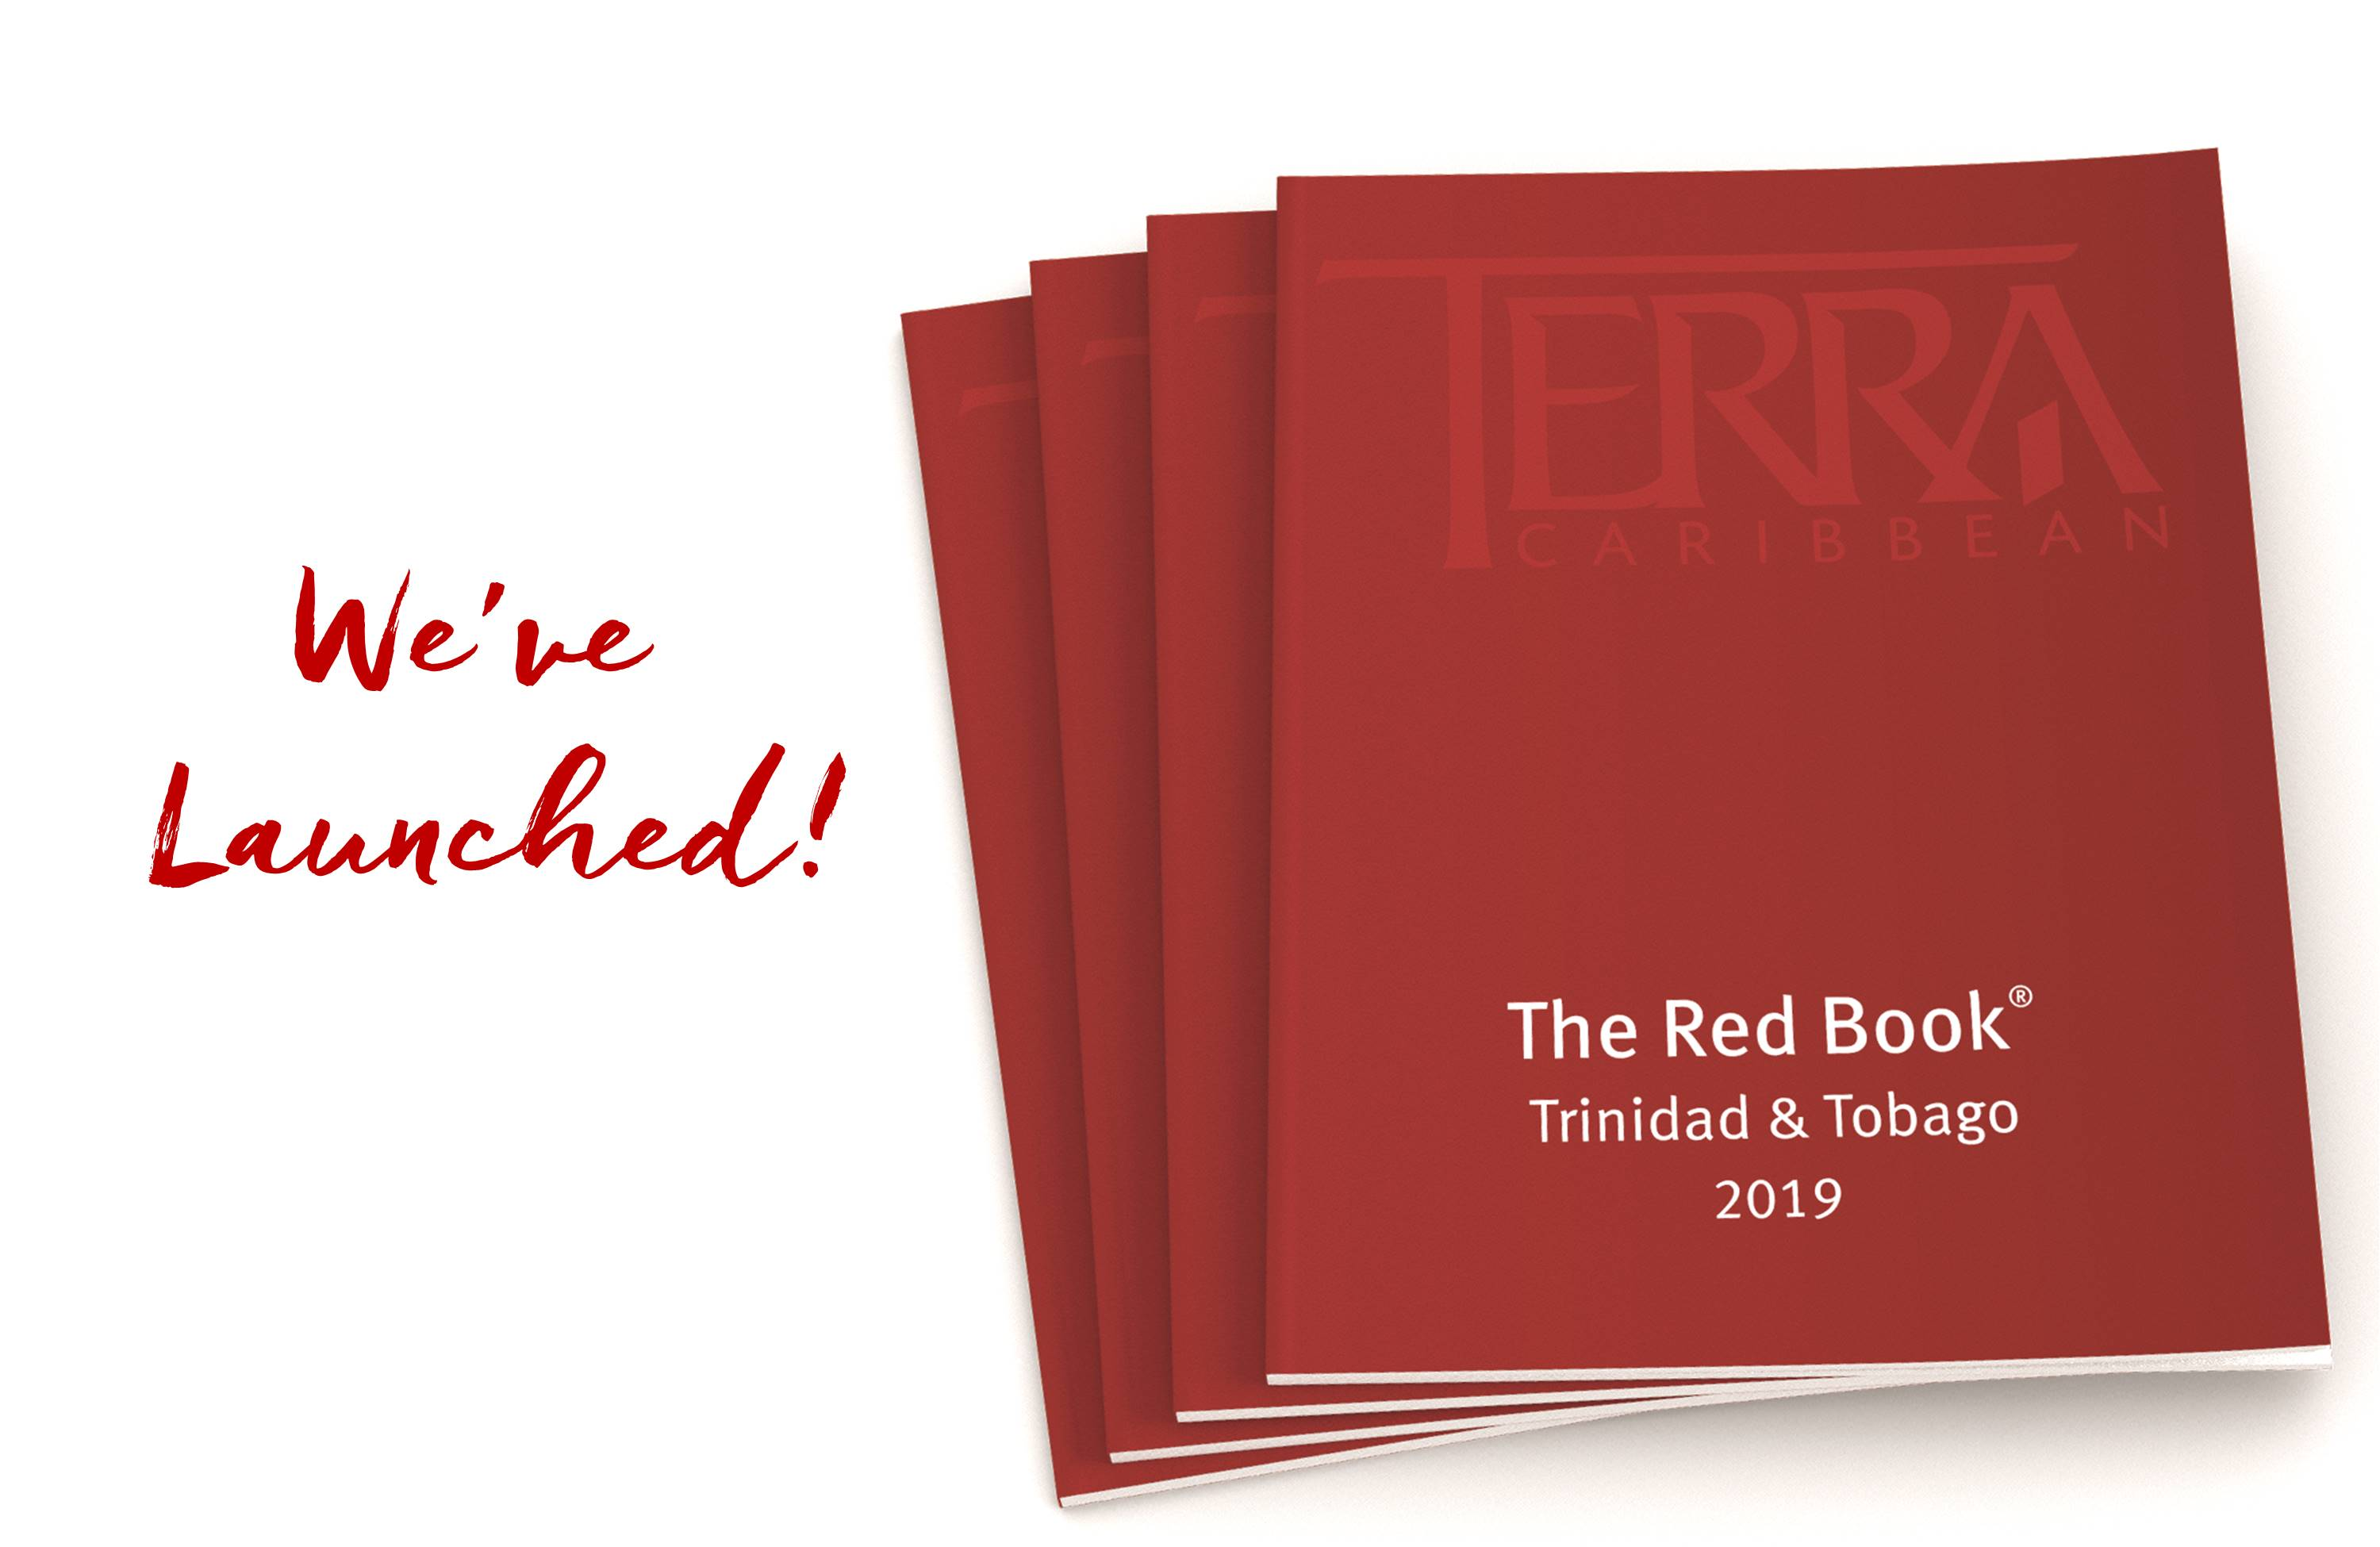 Know More - The Red Book Trinidad & Tobago